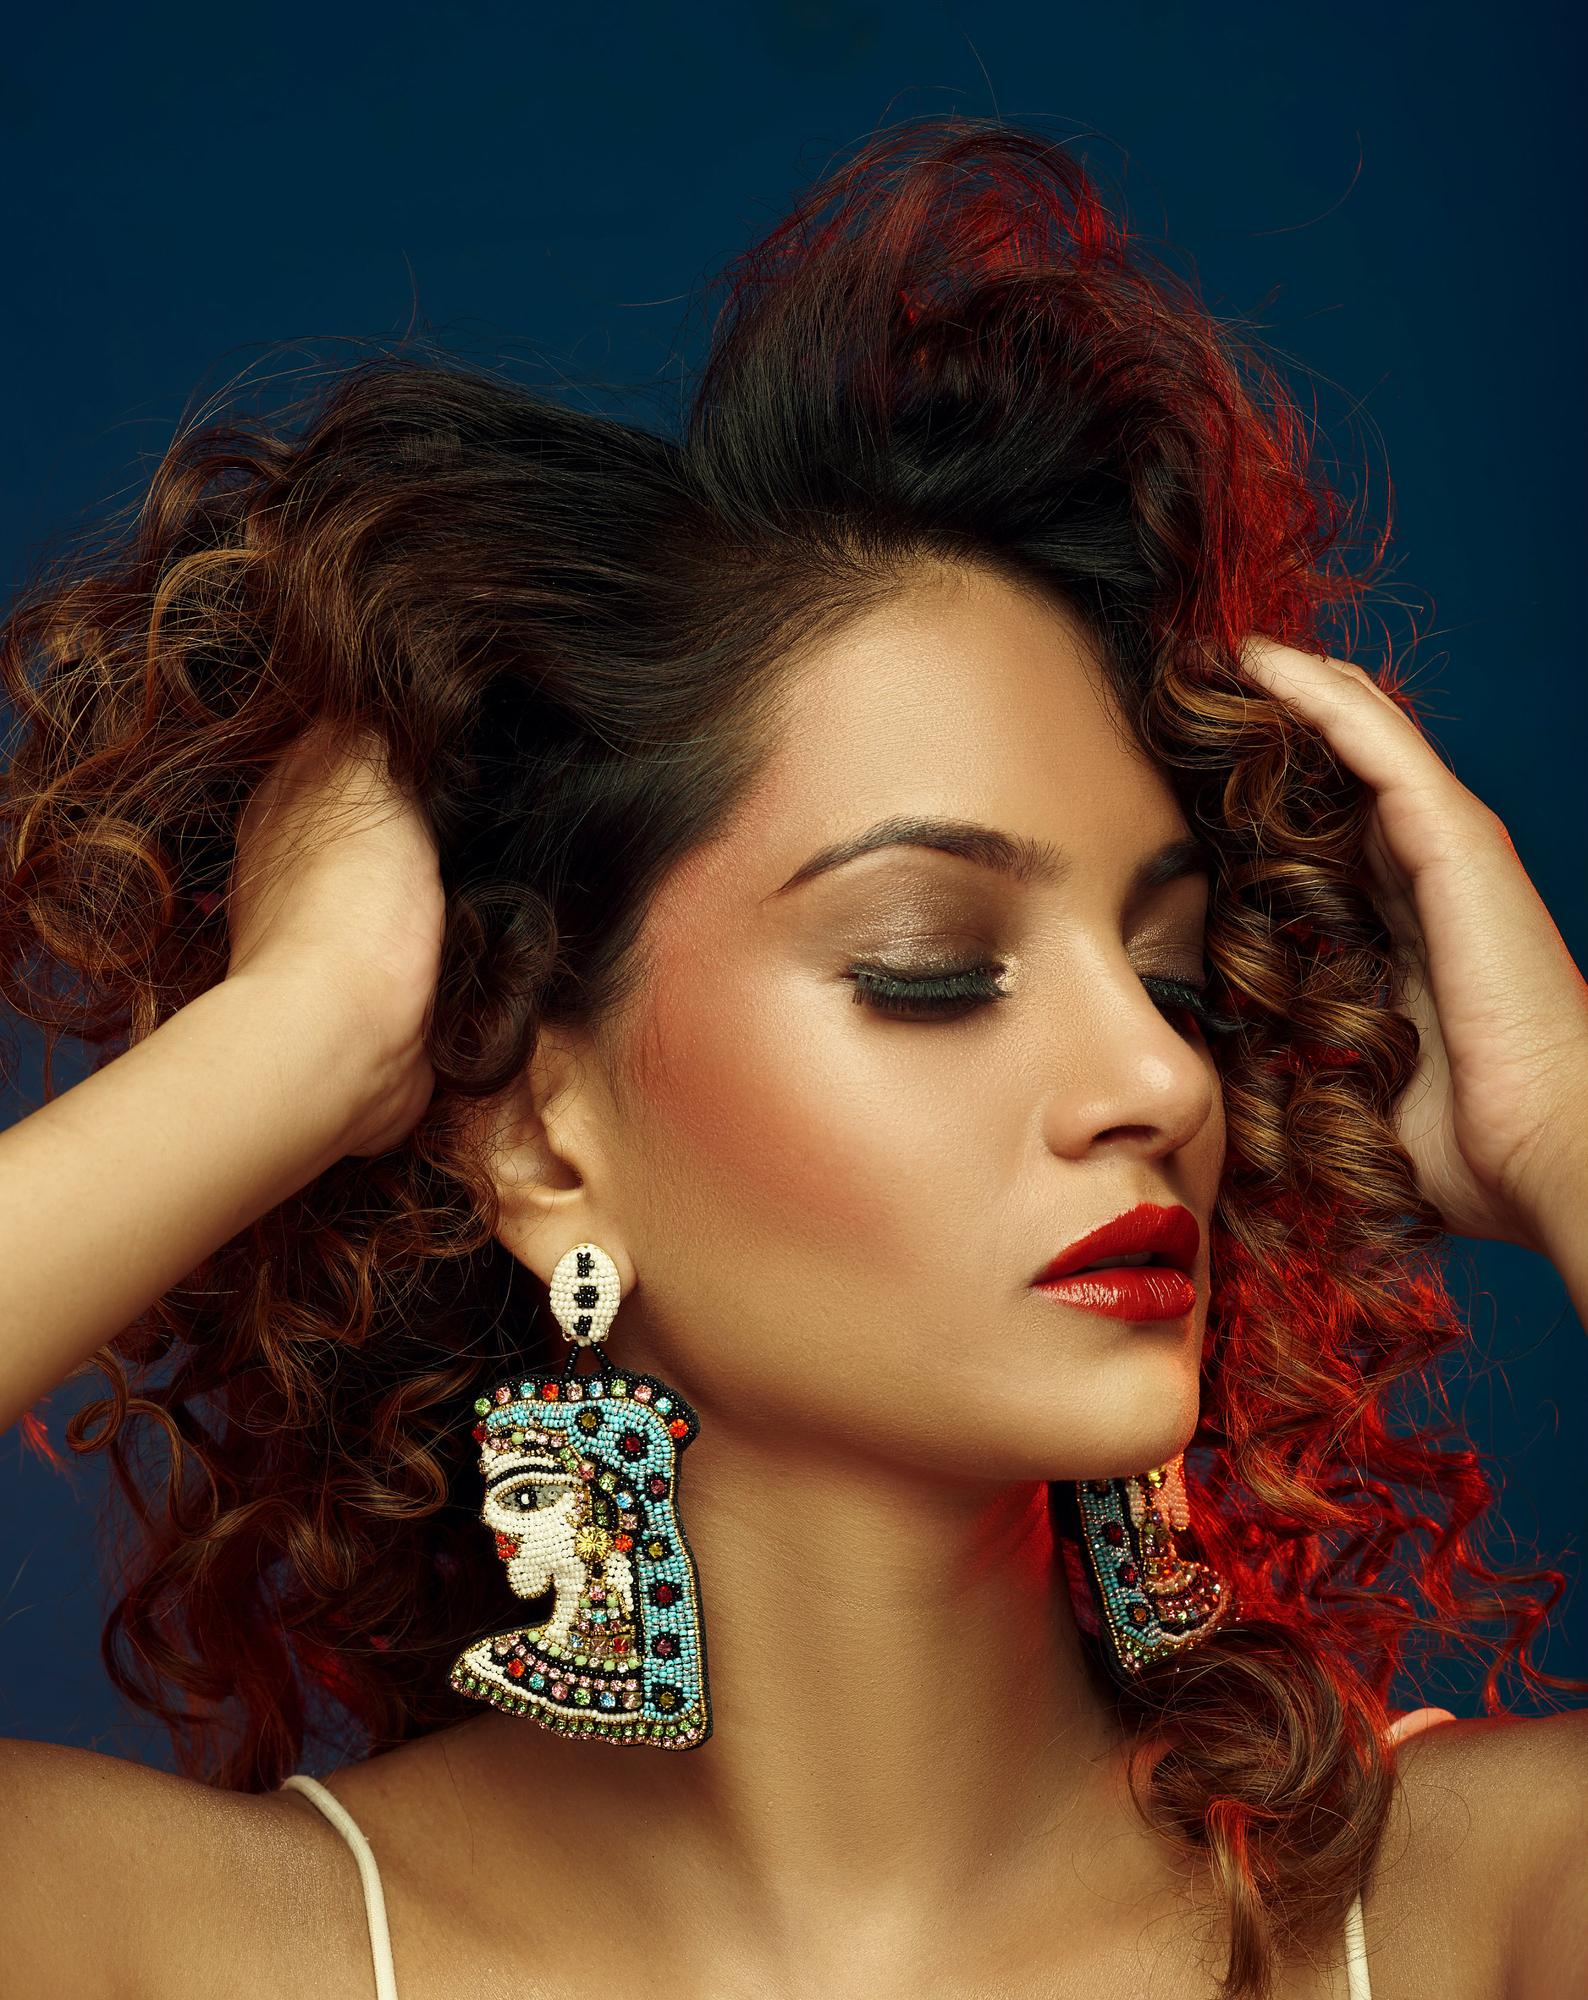 BEGADA designer jewellery earrings inspired by the culture of Egypt